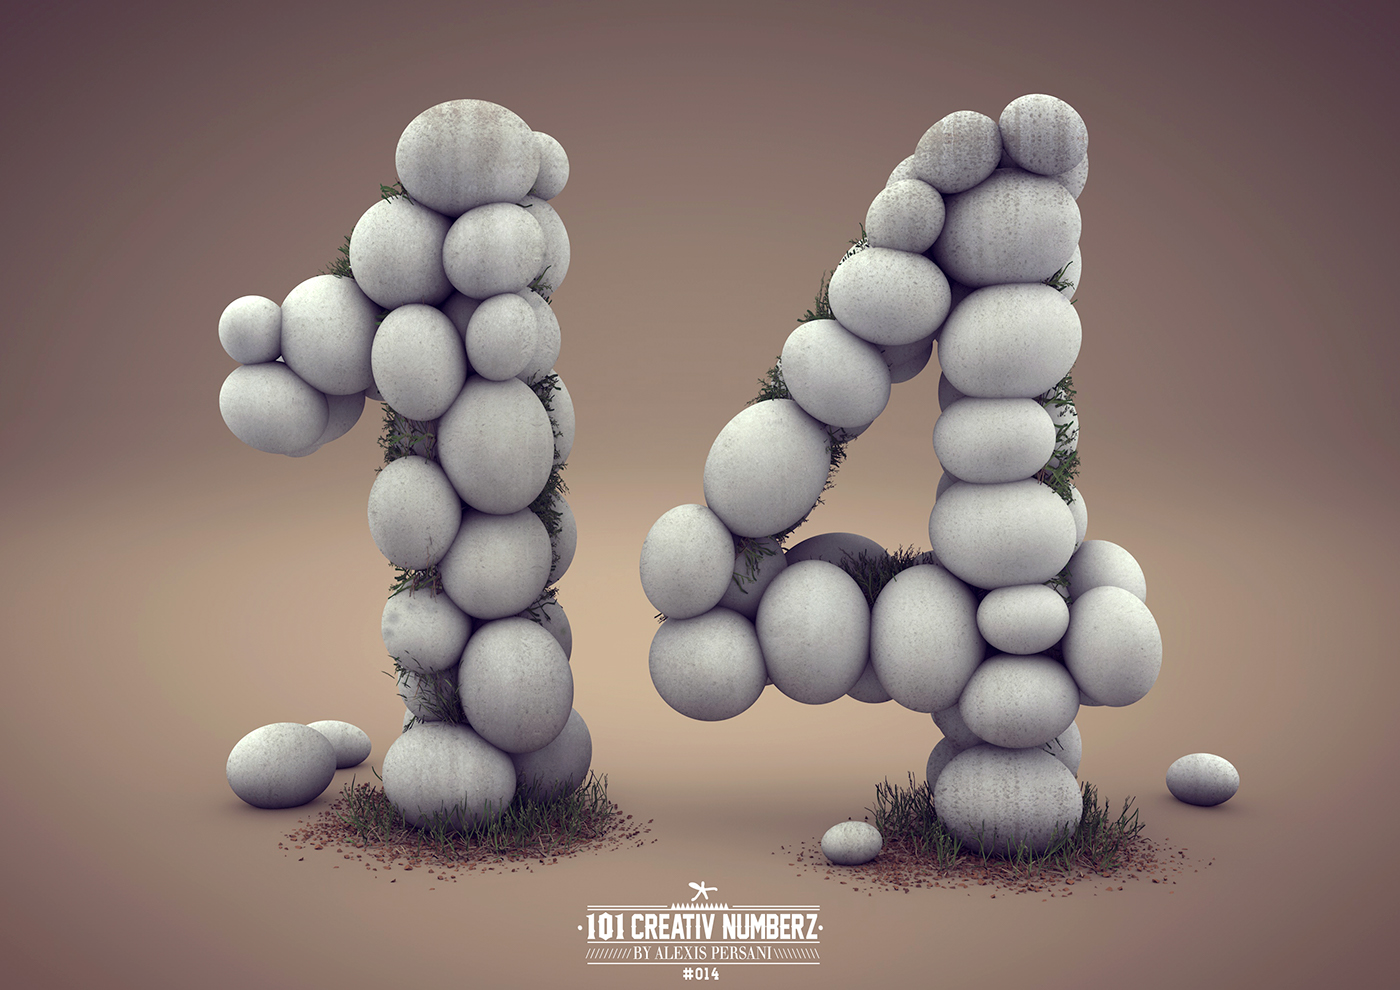 Outstanding 101 Creative Numbers Typography by Alexis Persani 13